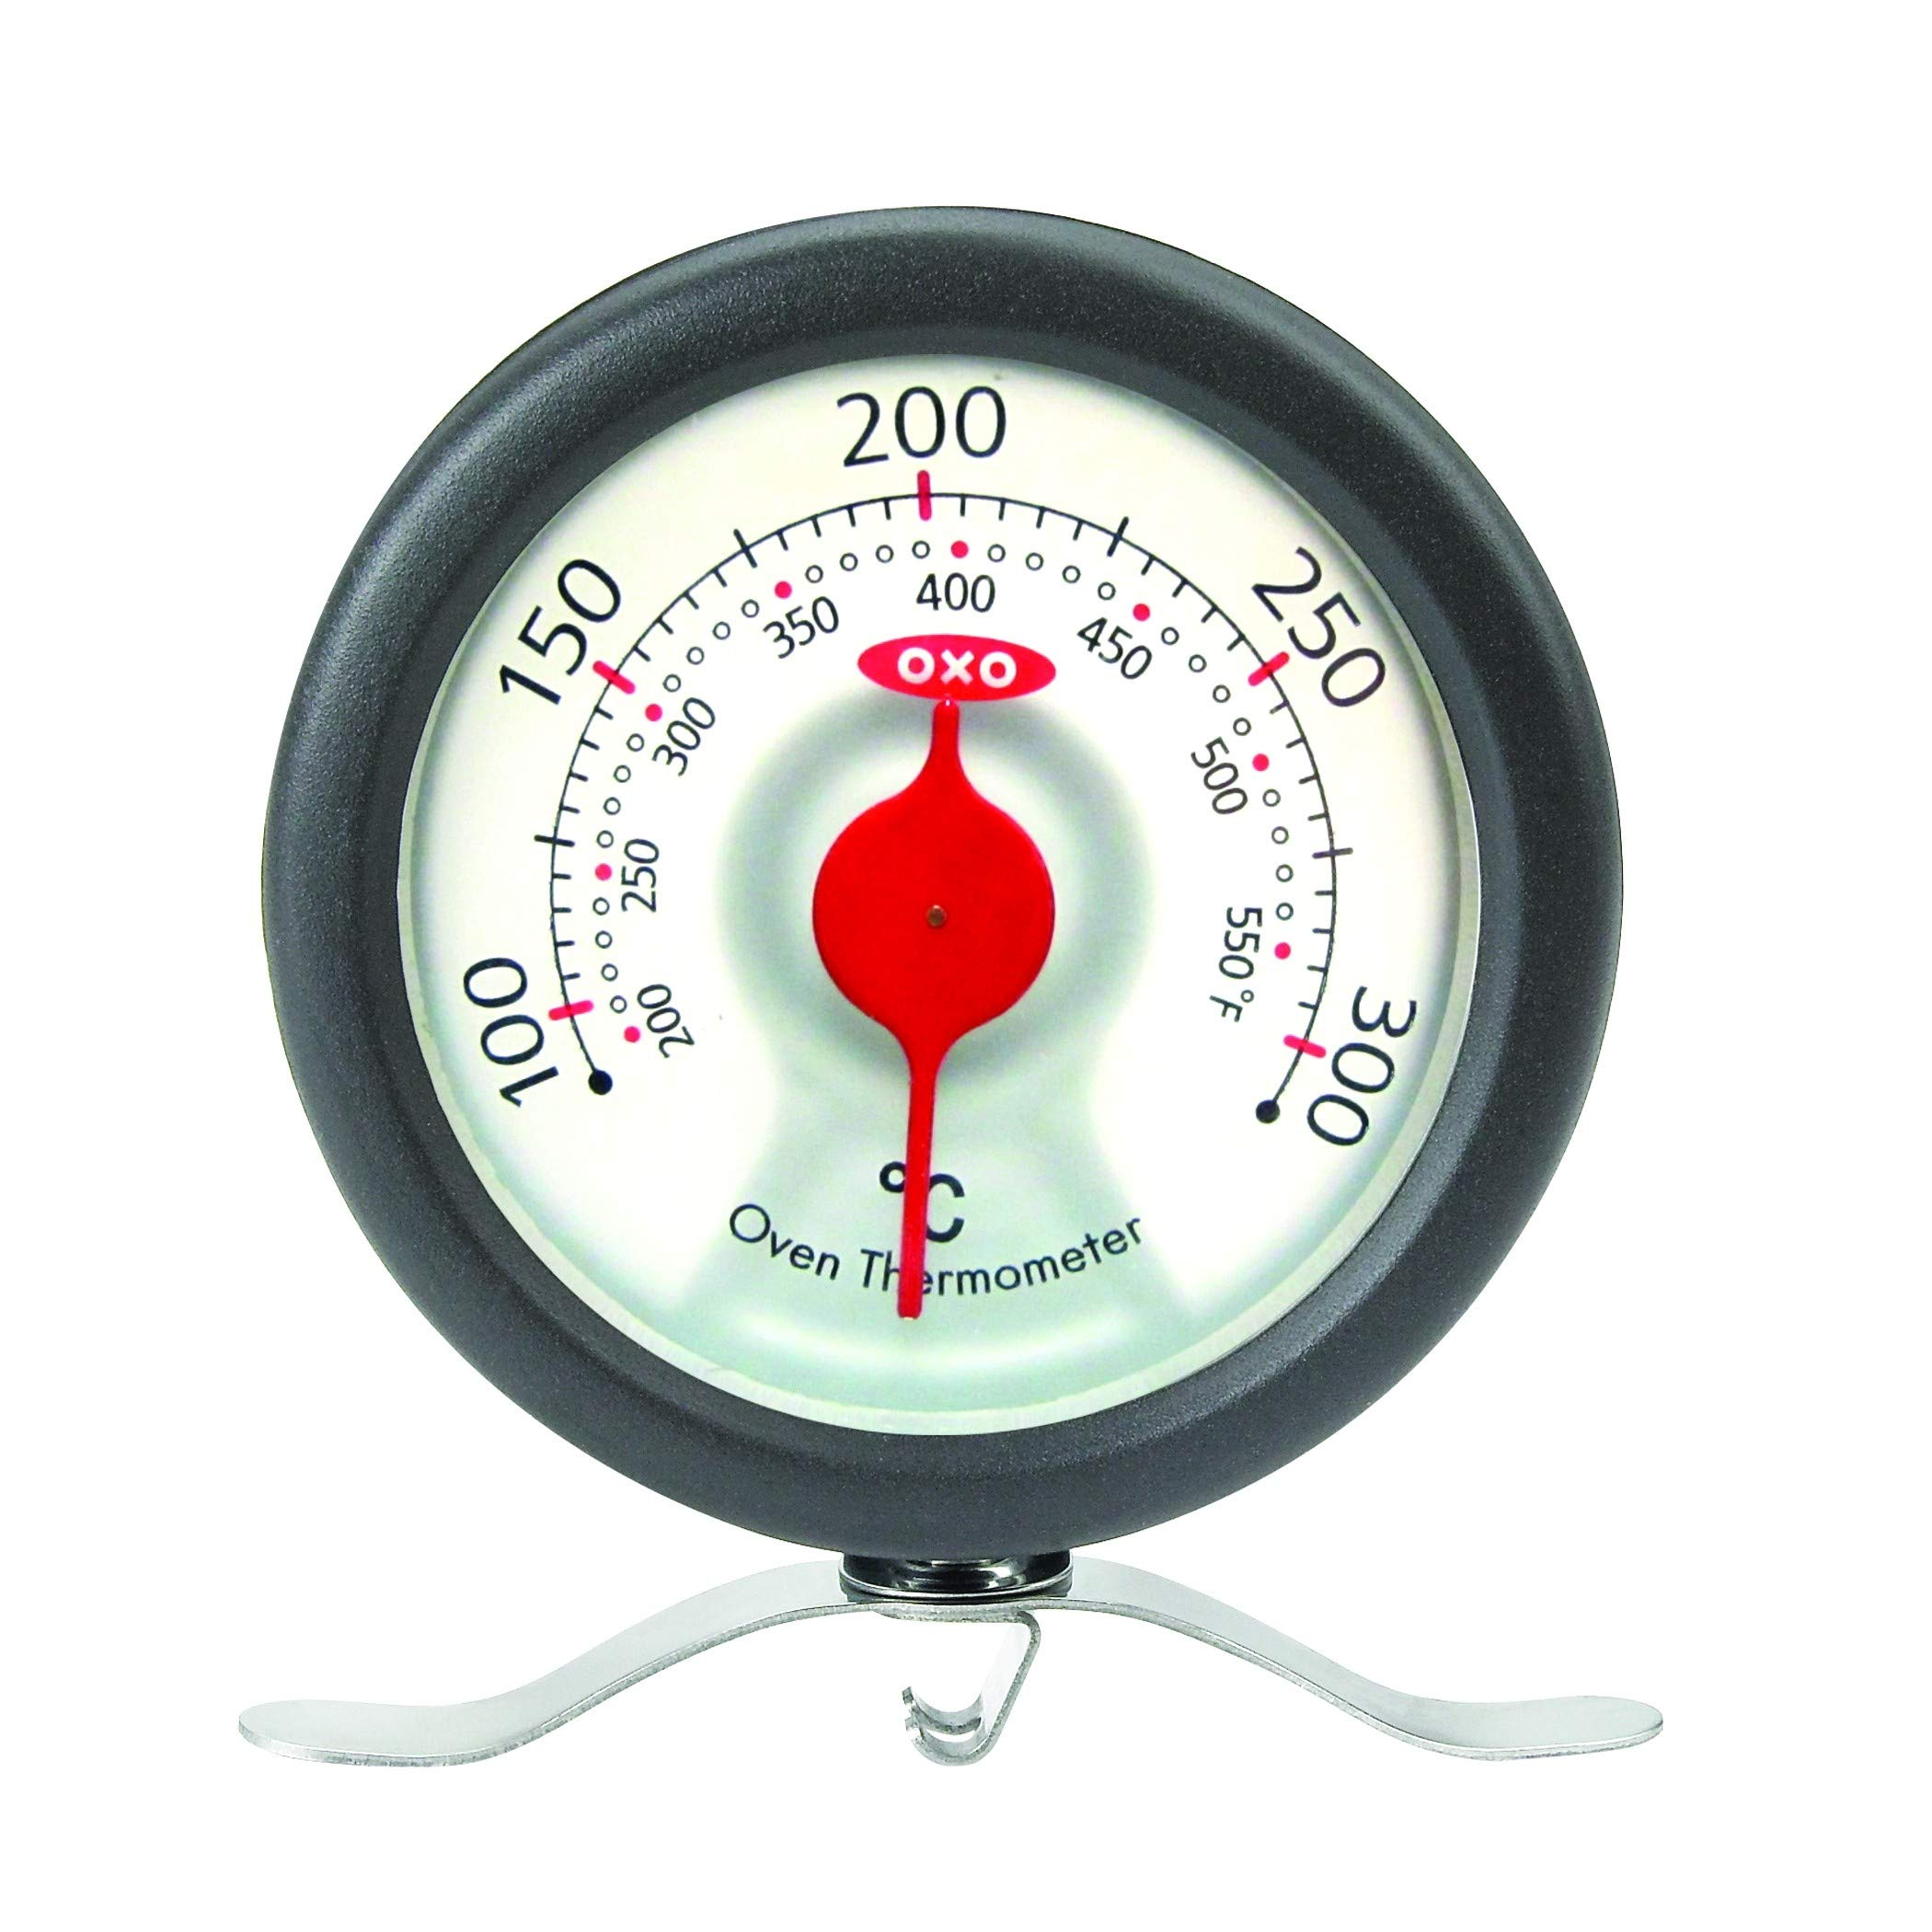 OXO Good Grips Quality Oven Thermometer - Hang Up or Stand Up Inside Cooker